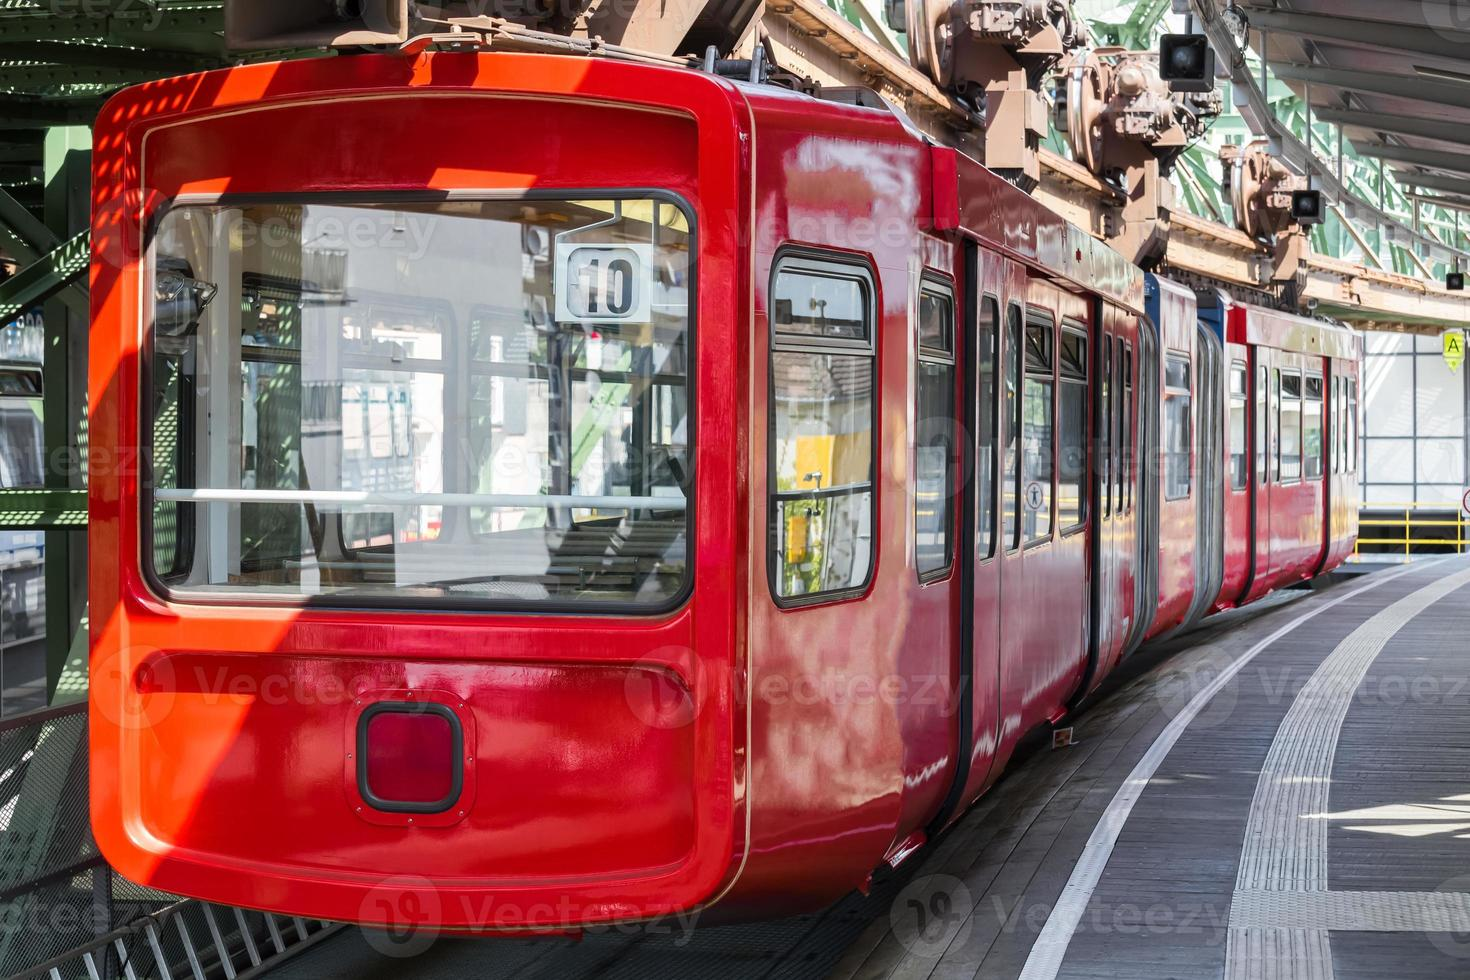 schwebebahn train in wuppertal germany photo